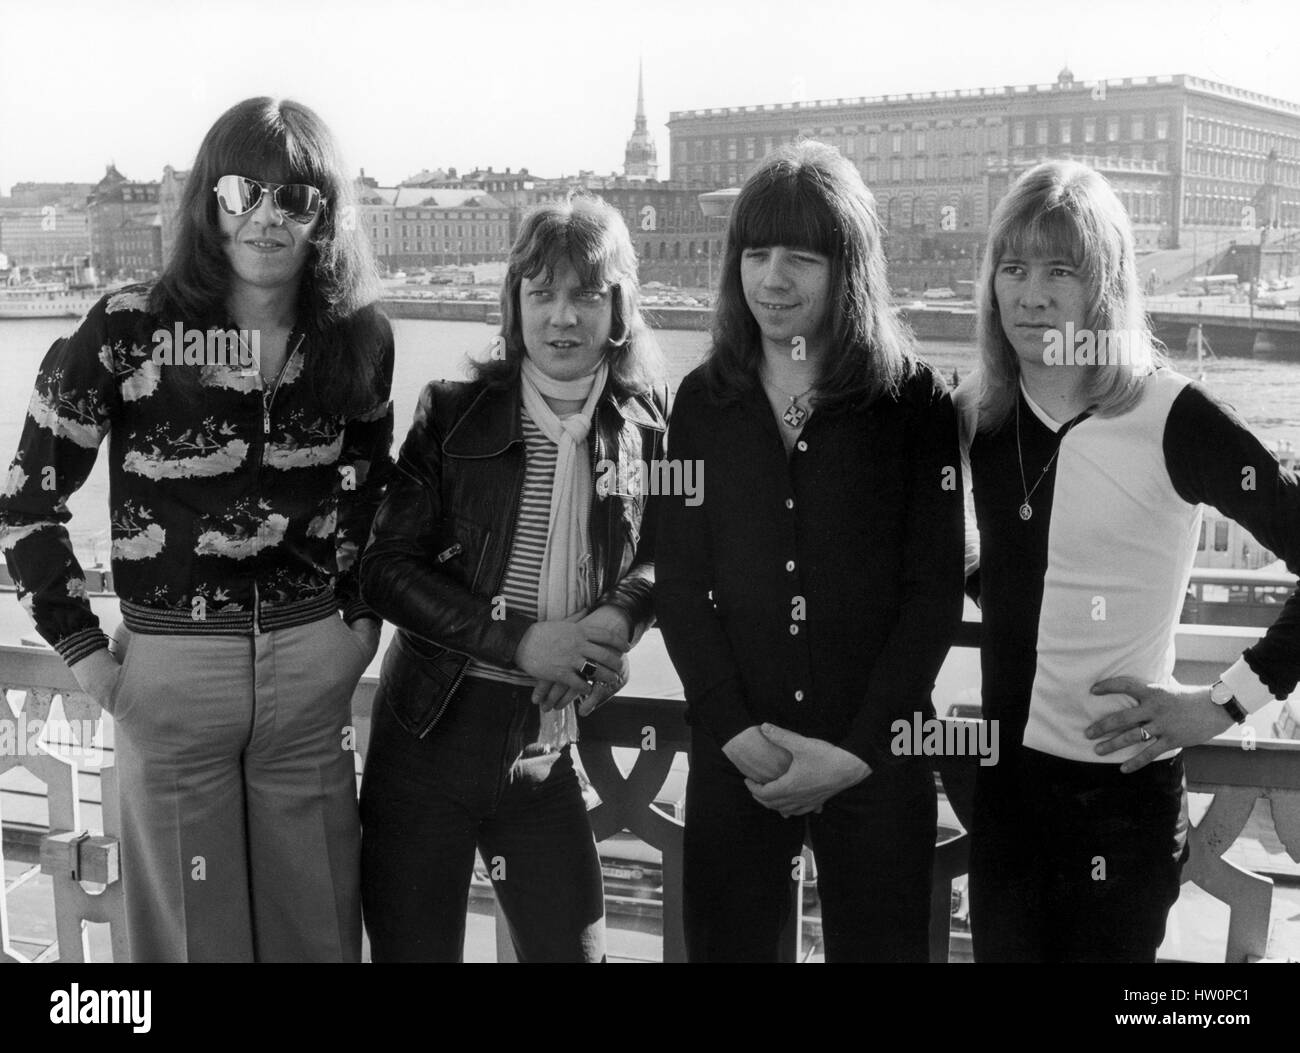 The Sweet British pop group 1975 with the Stockholm Royal Palace in background.Band member  Brian Conolly-Andy Scott - Stock Image